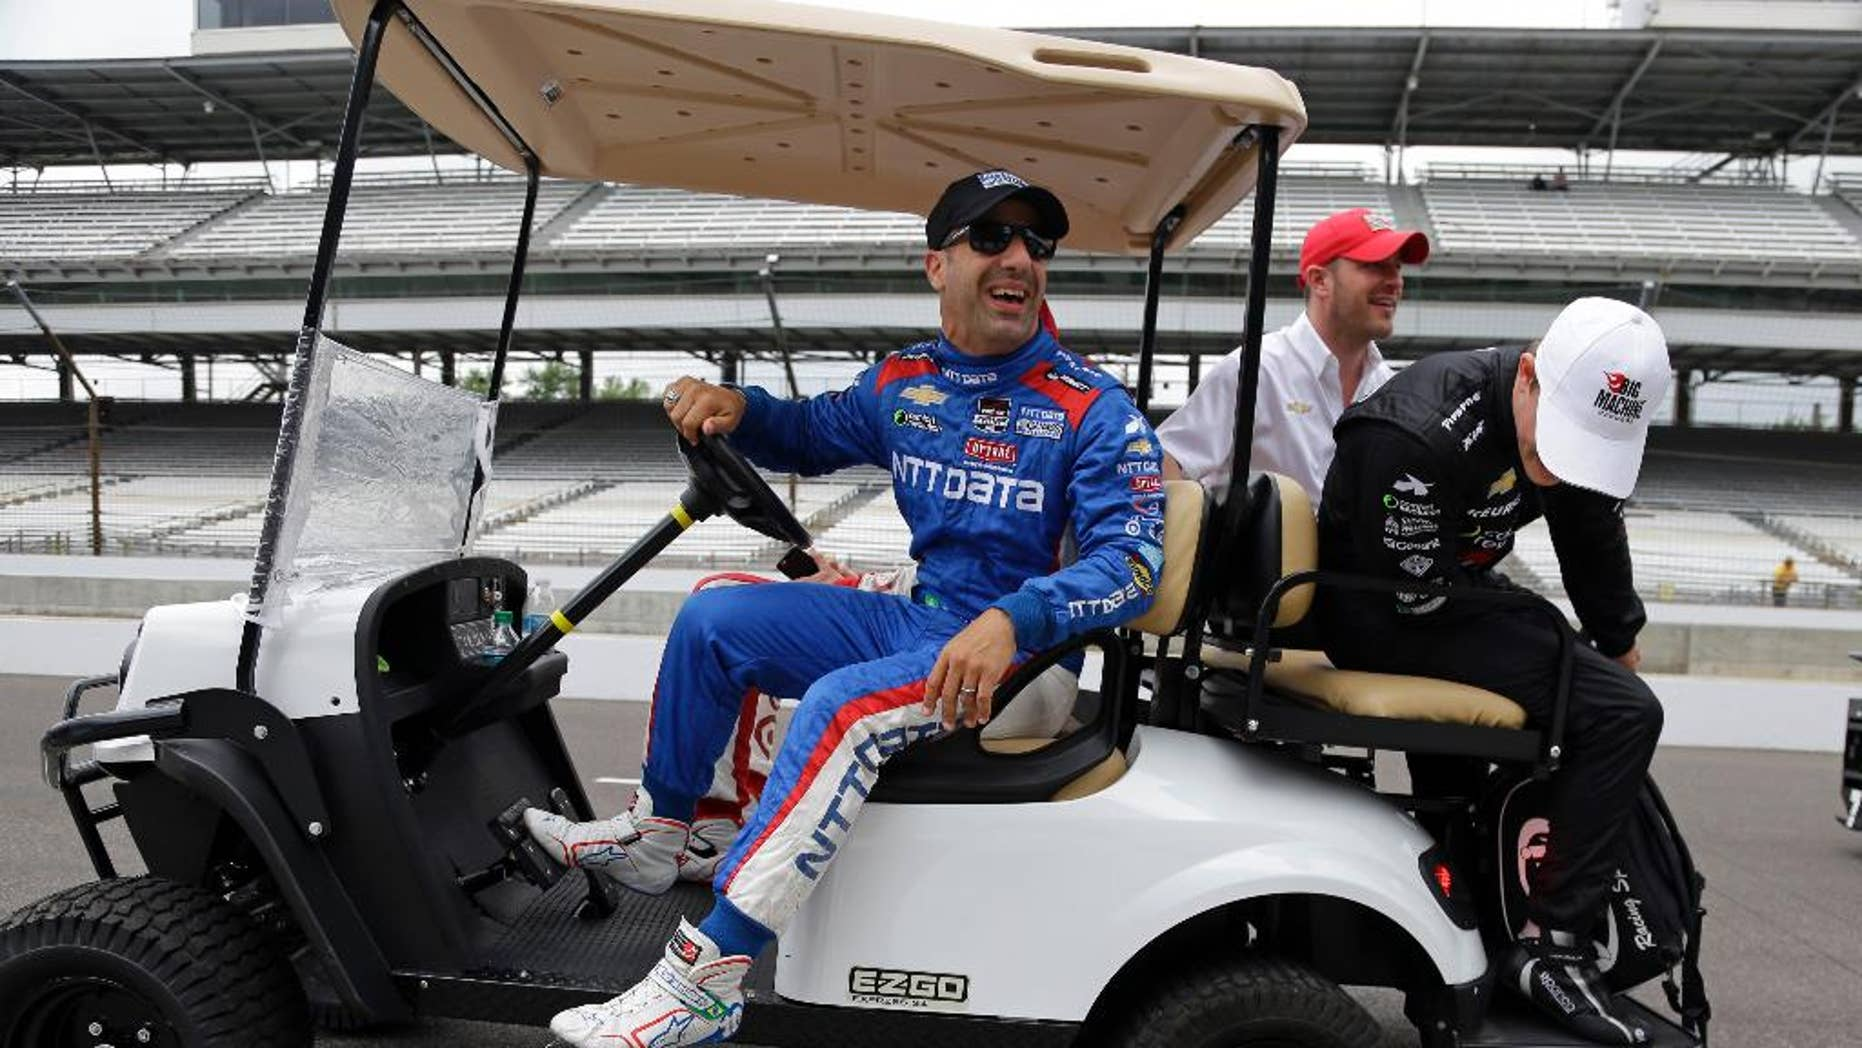 Tony Kanaan, of Brazil, laughs as Sage Karam looks at a flat tire on the cart  they where riding in before the start of practice for the Indianapolis 500 auto race at Indianapolis Motor Speedway in Indianapolis, Monday, May 18, 2015.  (AP Photo/Michael Conroy)